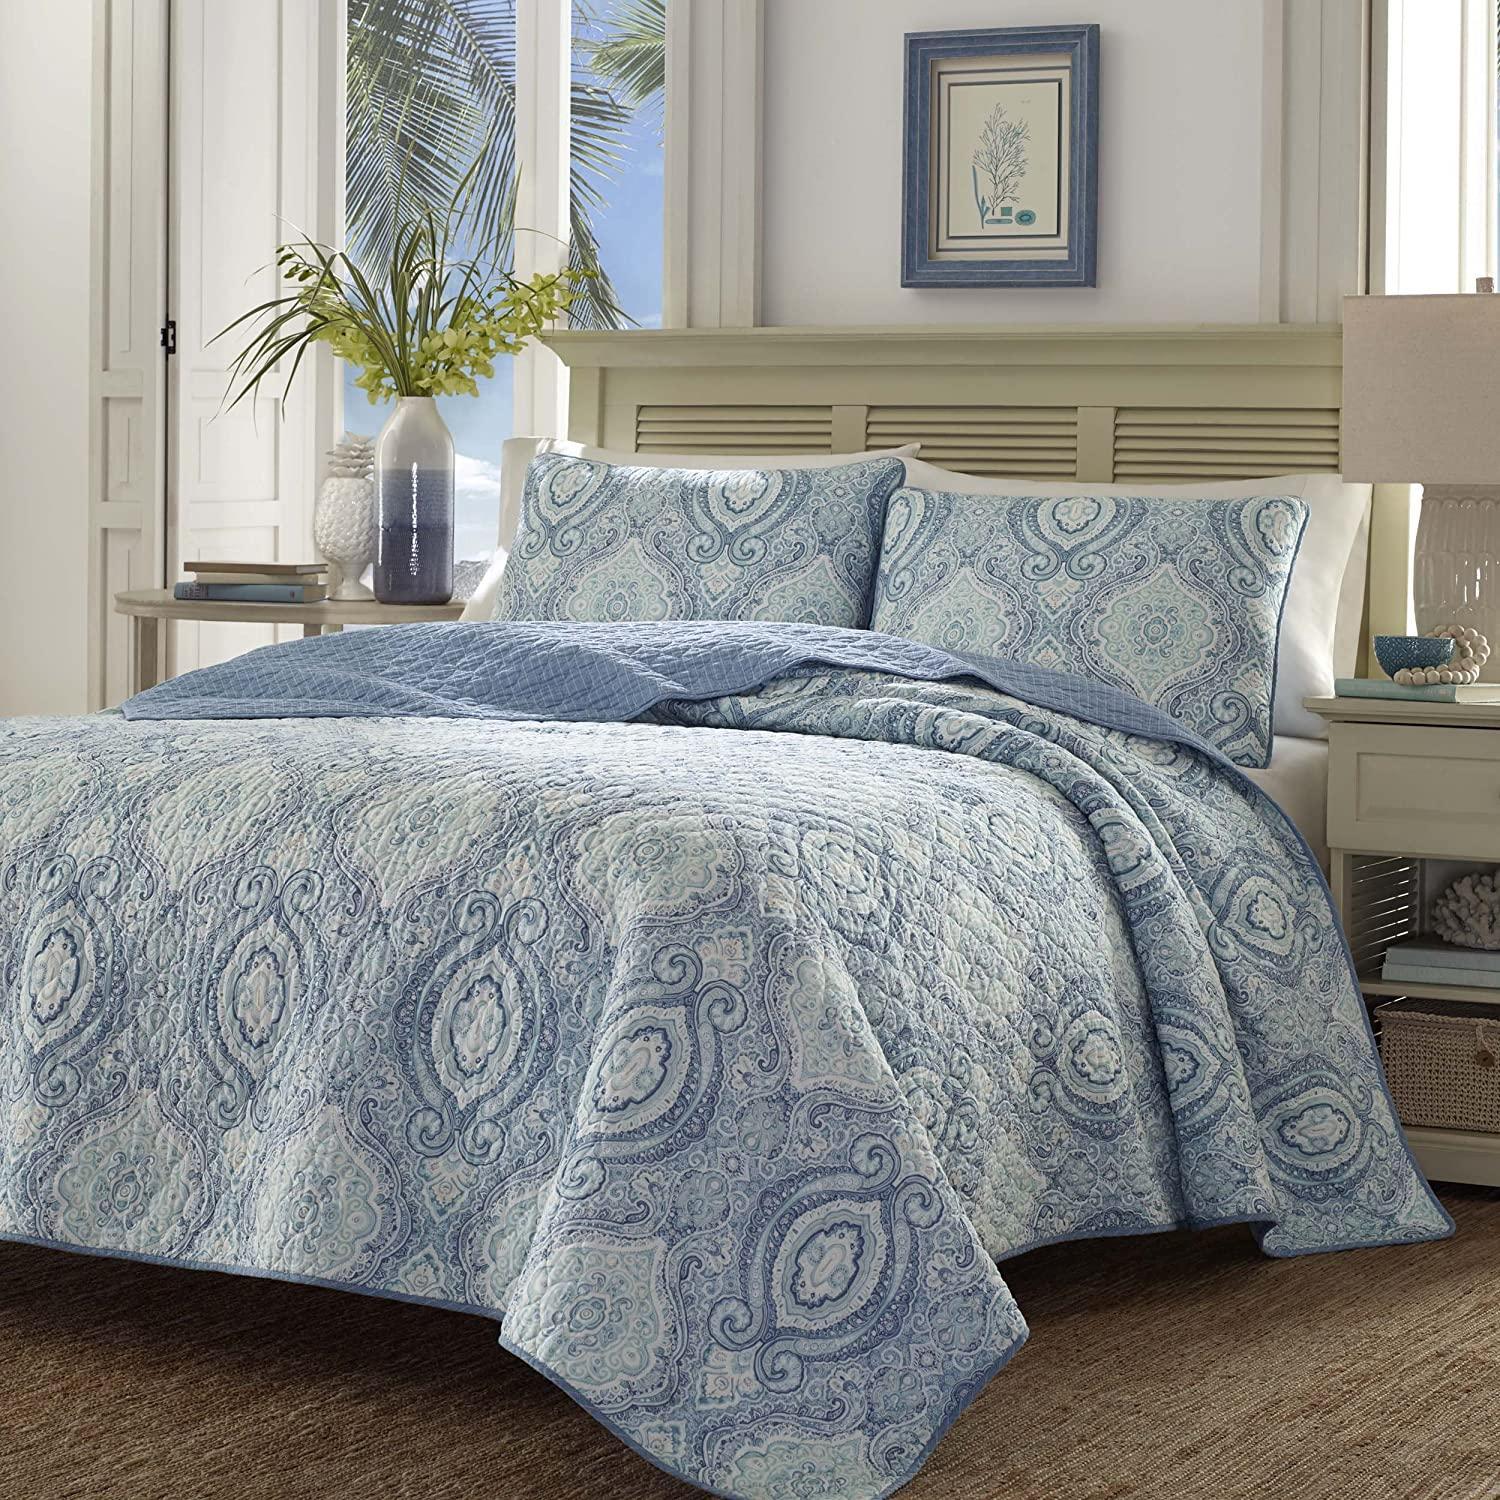 Tommy Bahama 220637 Turtle Cove Caribbean Quilt Set, King, Carribean Blue